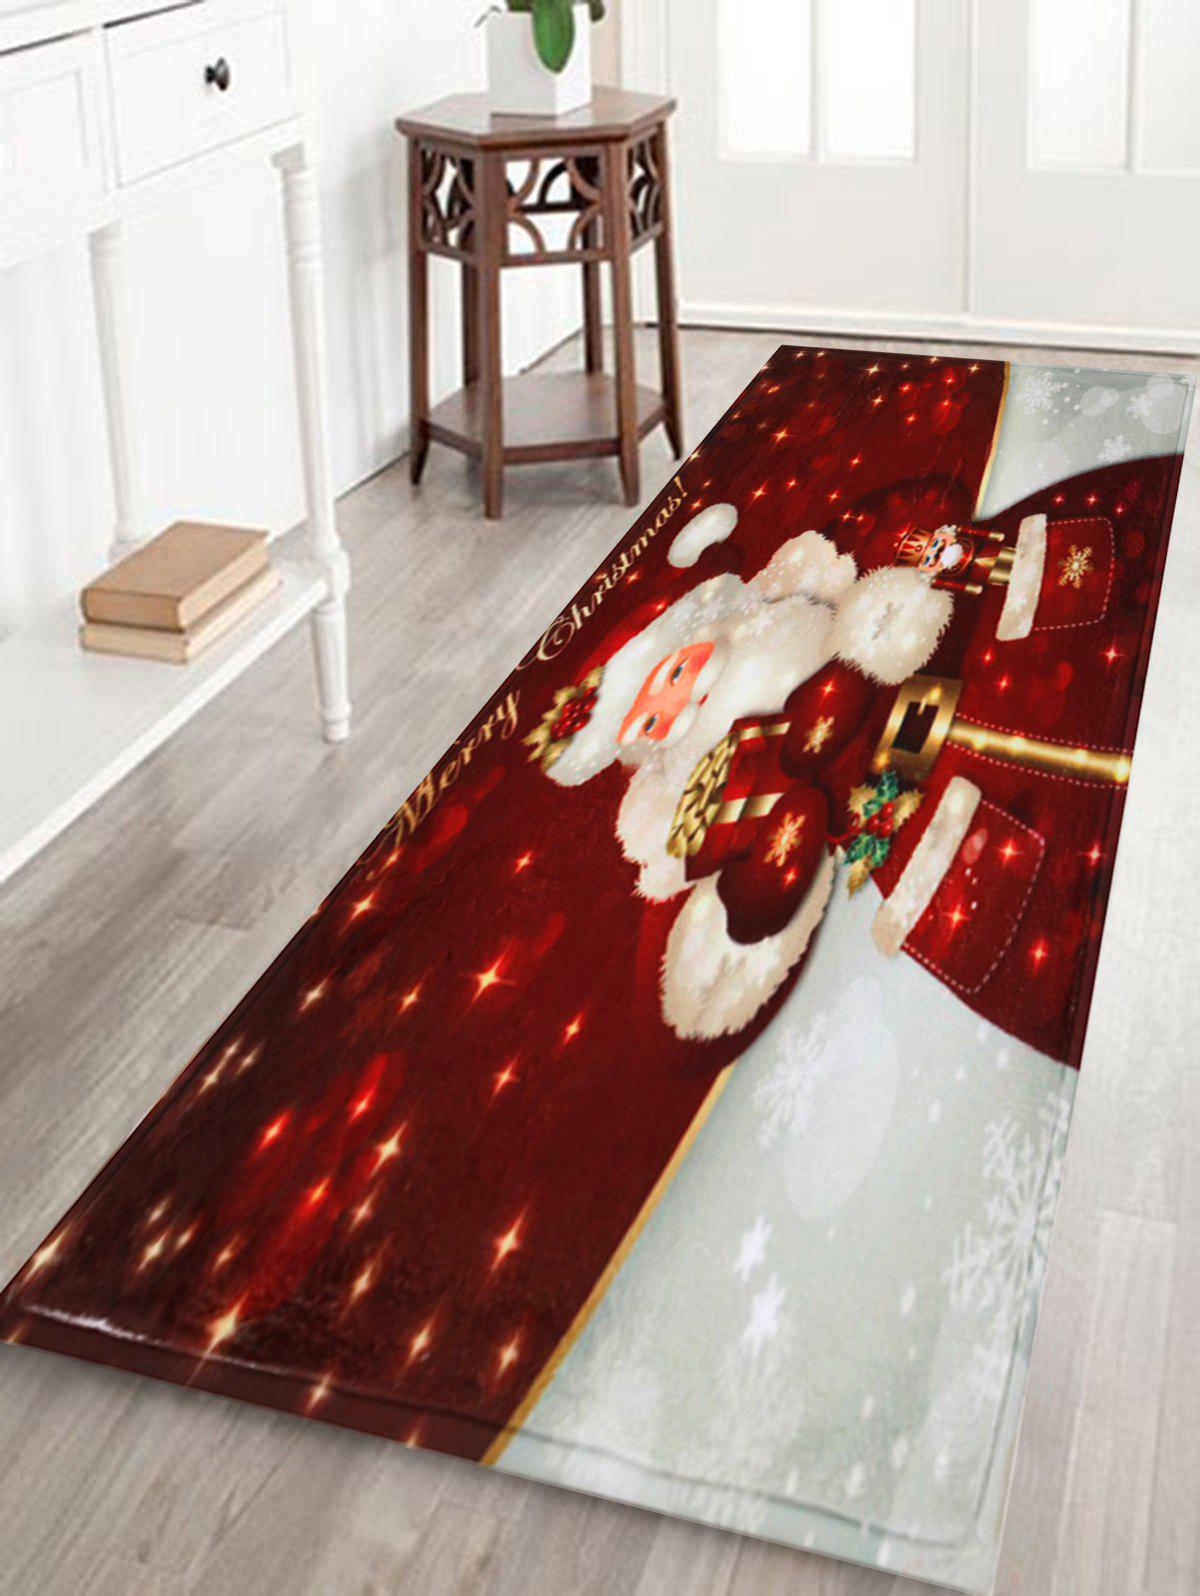 Christmas Santa Claus Antislip Bath MatHOME<br><br>Size: W16 INCH * L47 INCH; Color: DARK RED; Products Type: Bath rugs; Materials: Coral FLeece; Pattern: Santa Claus; Style: Festival; Shape: Rectangular; Package Contents: 1 x Rug;